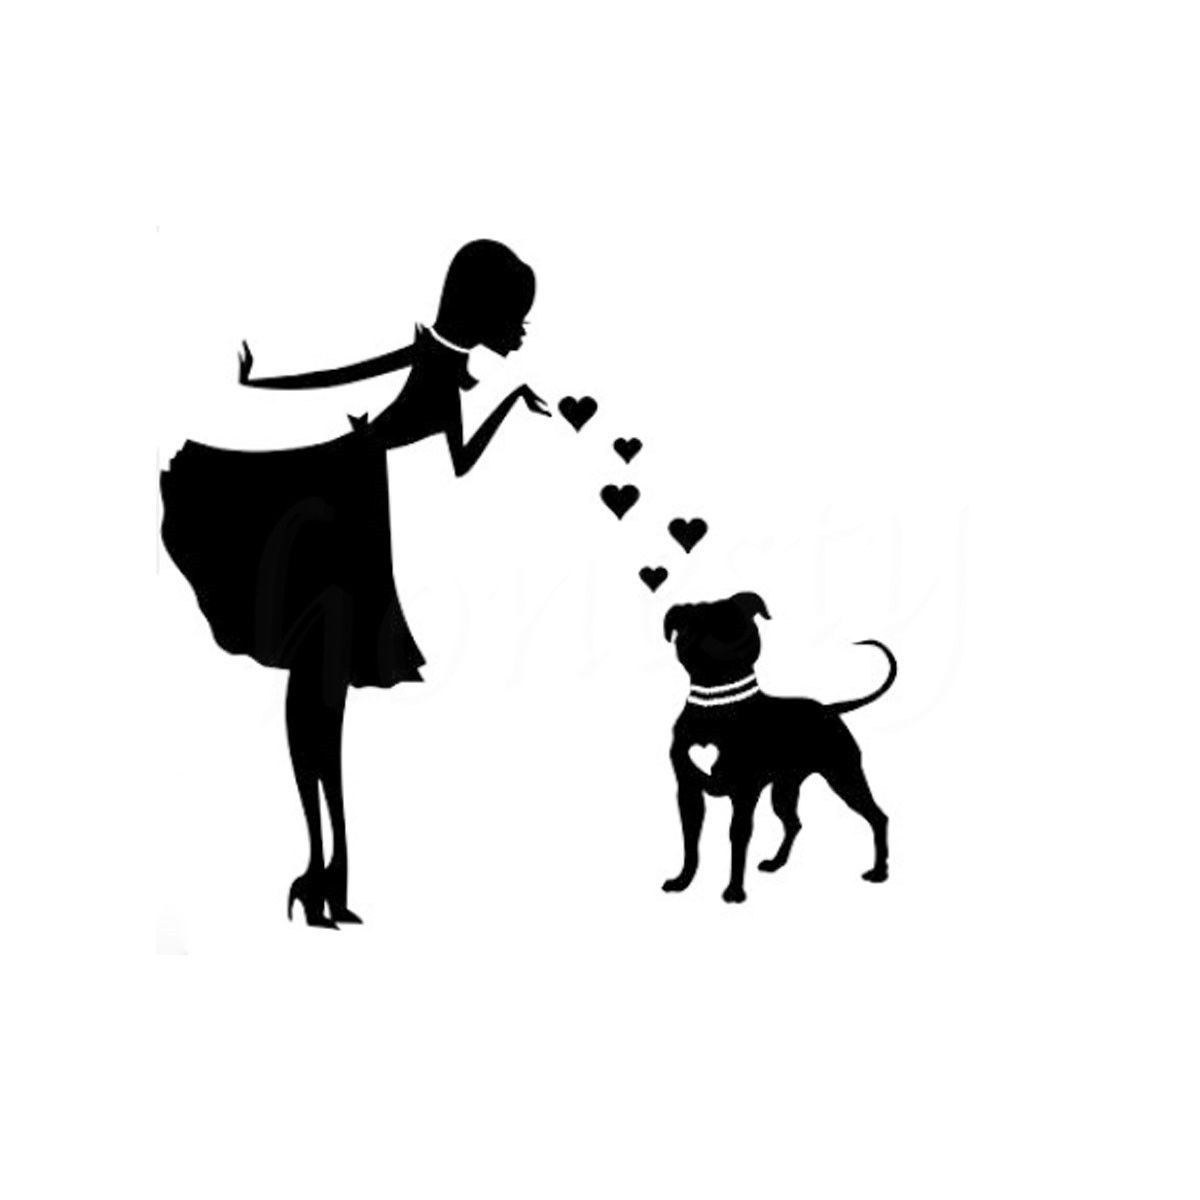 Funny PITS and PEARLS PITBULL Dog Car Motorcycle Window Sticker Wall Home Glass Window Door Black Vinyl Decal 12.3cmX11.5cm veterinary and human 2 14g dl 1 000 1 060 ri dog 1 000 1 060 ri cat clinical dog and cats refractometer rhc 300atc